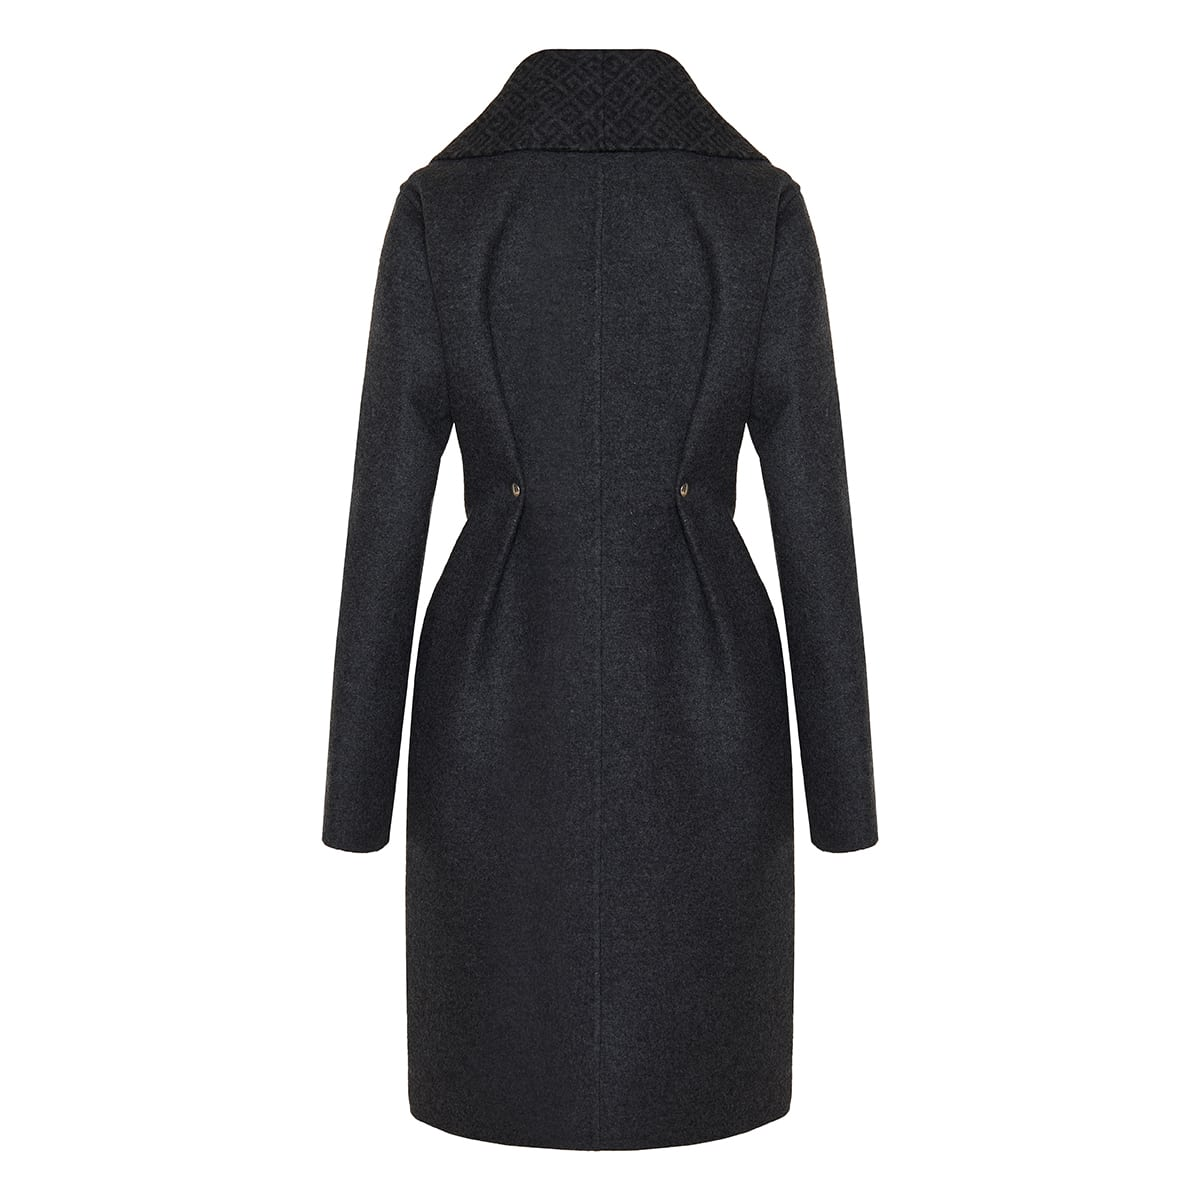 4G belted wool coat